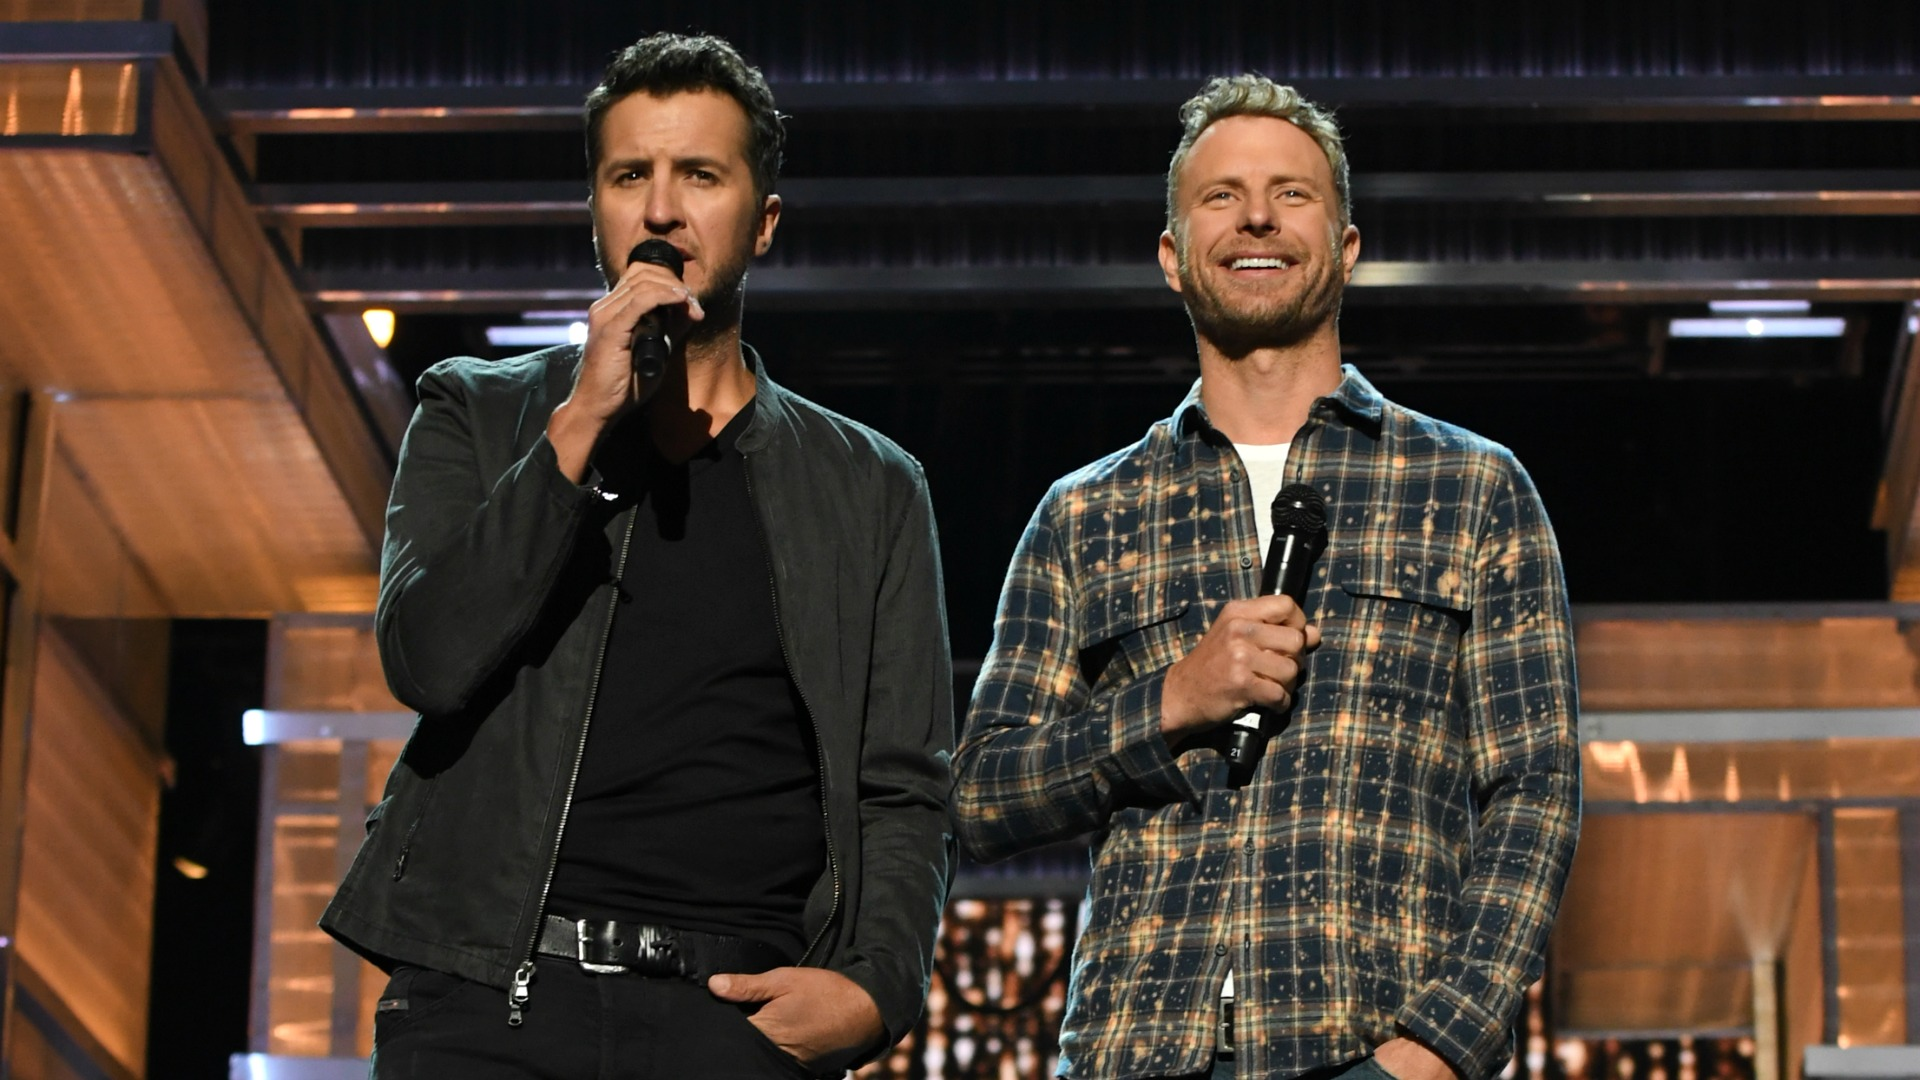 Co-hosts Luke Bryan and Dierks Bentley hit the stage for a run through of the 52nd ACM Awards.